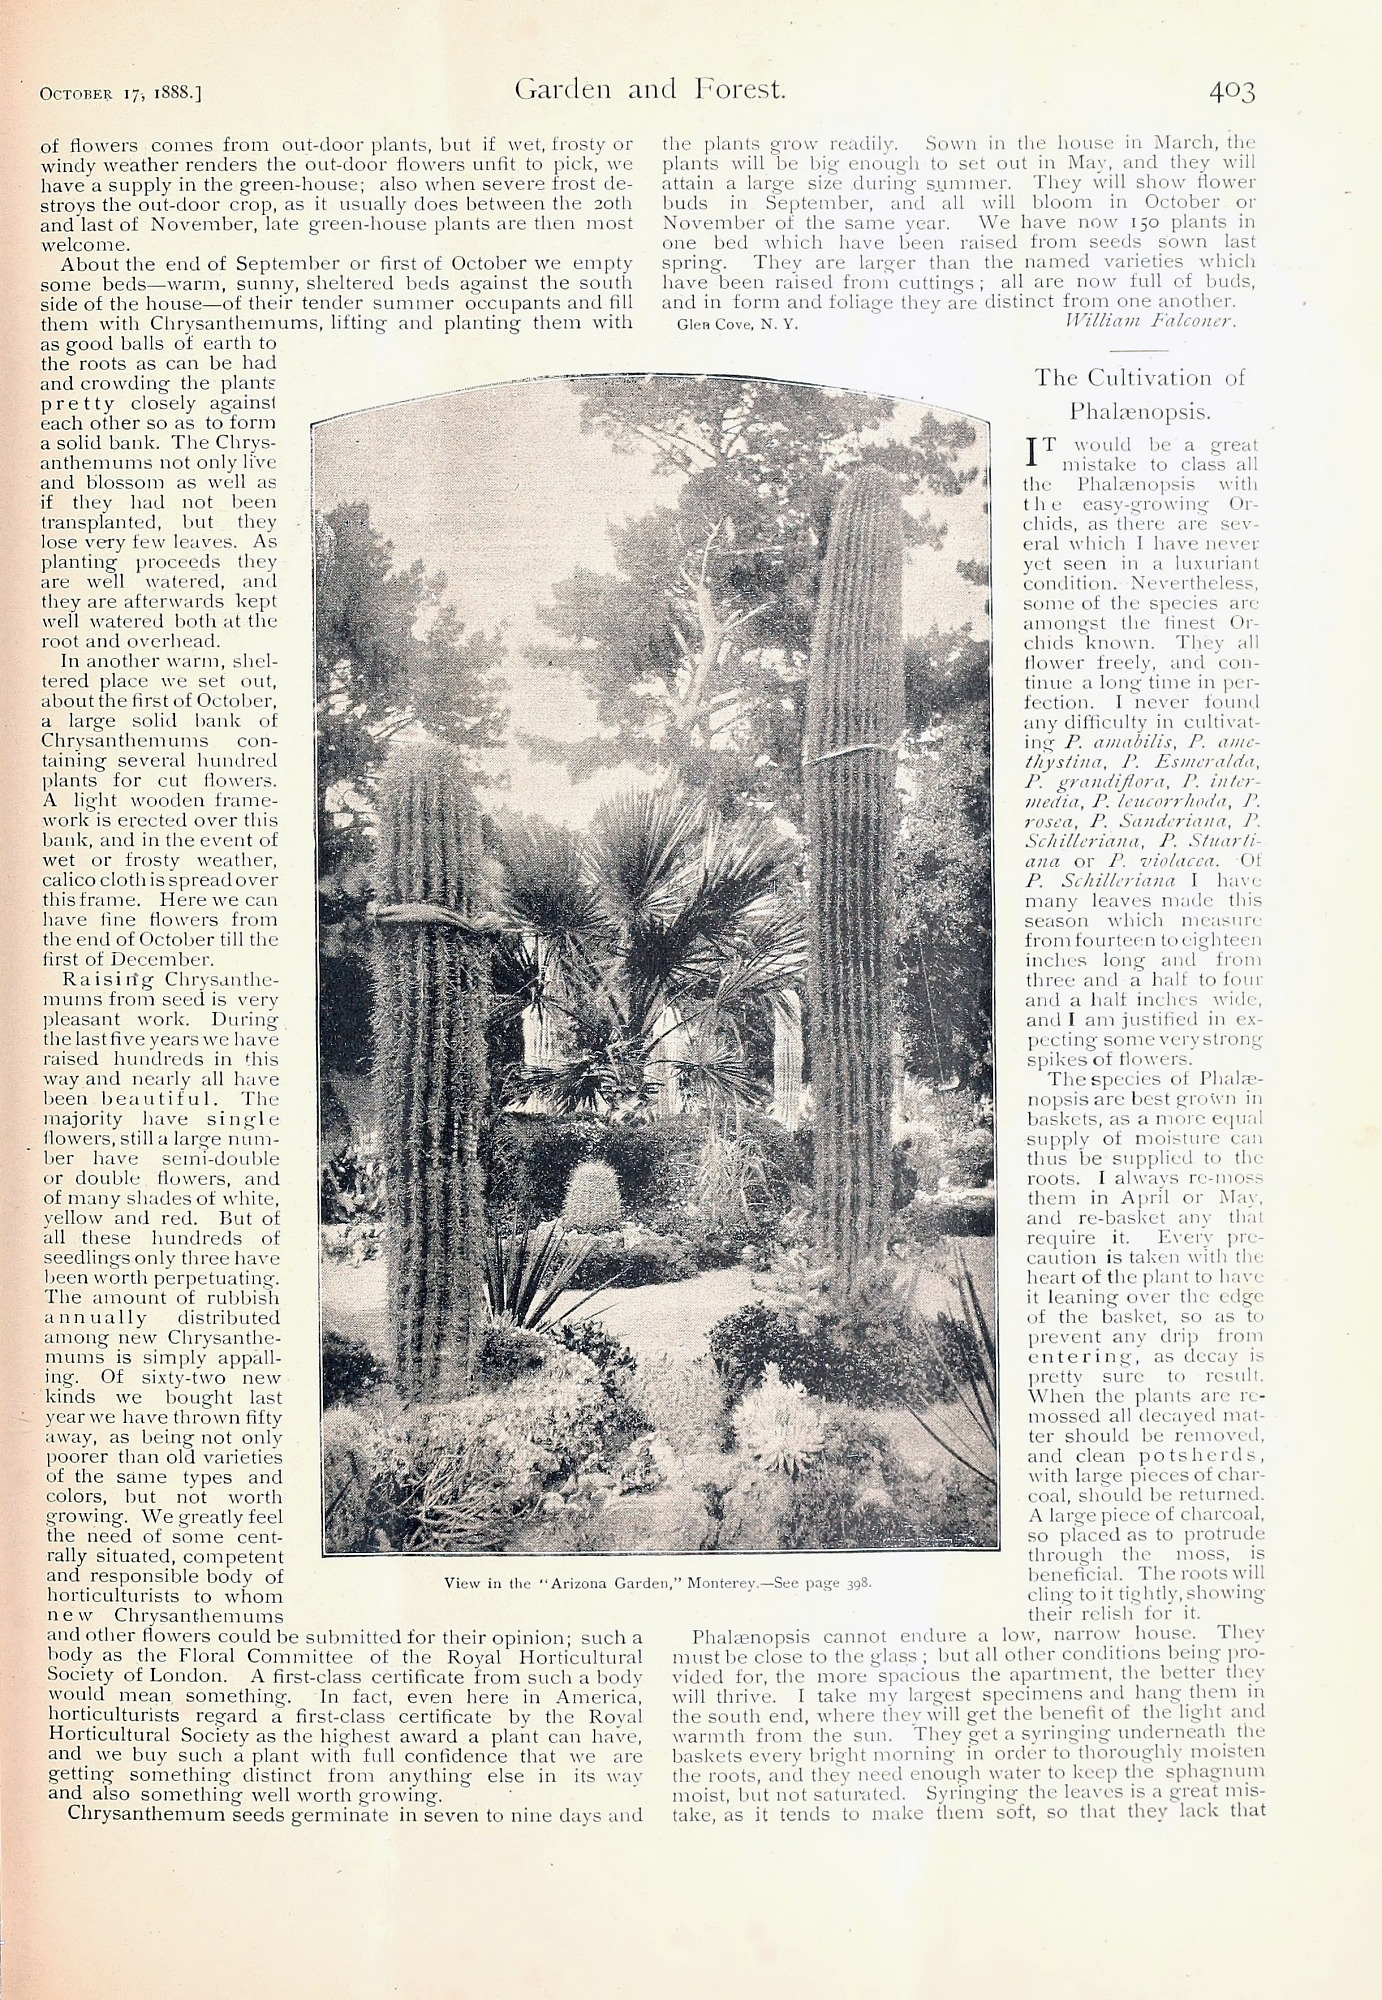 Garden and Forest, a weekly journal begun by Sargent, ran for a decade (1888-1897), covering topics ranging from horticulture, gardening, and landscape design to cemeteries and town planning.